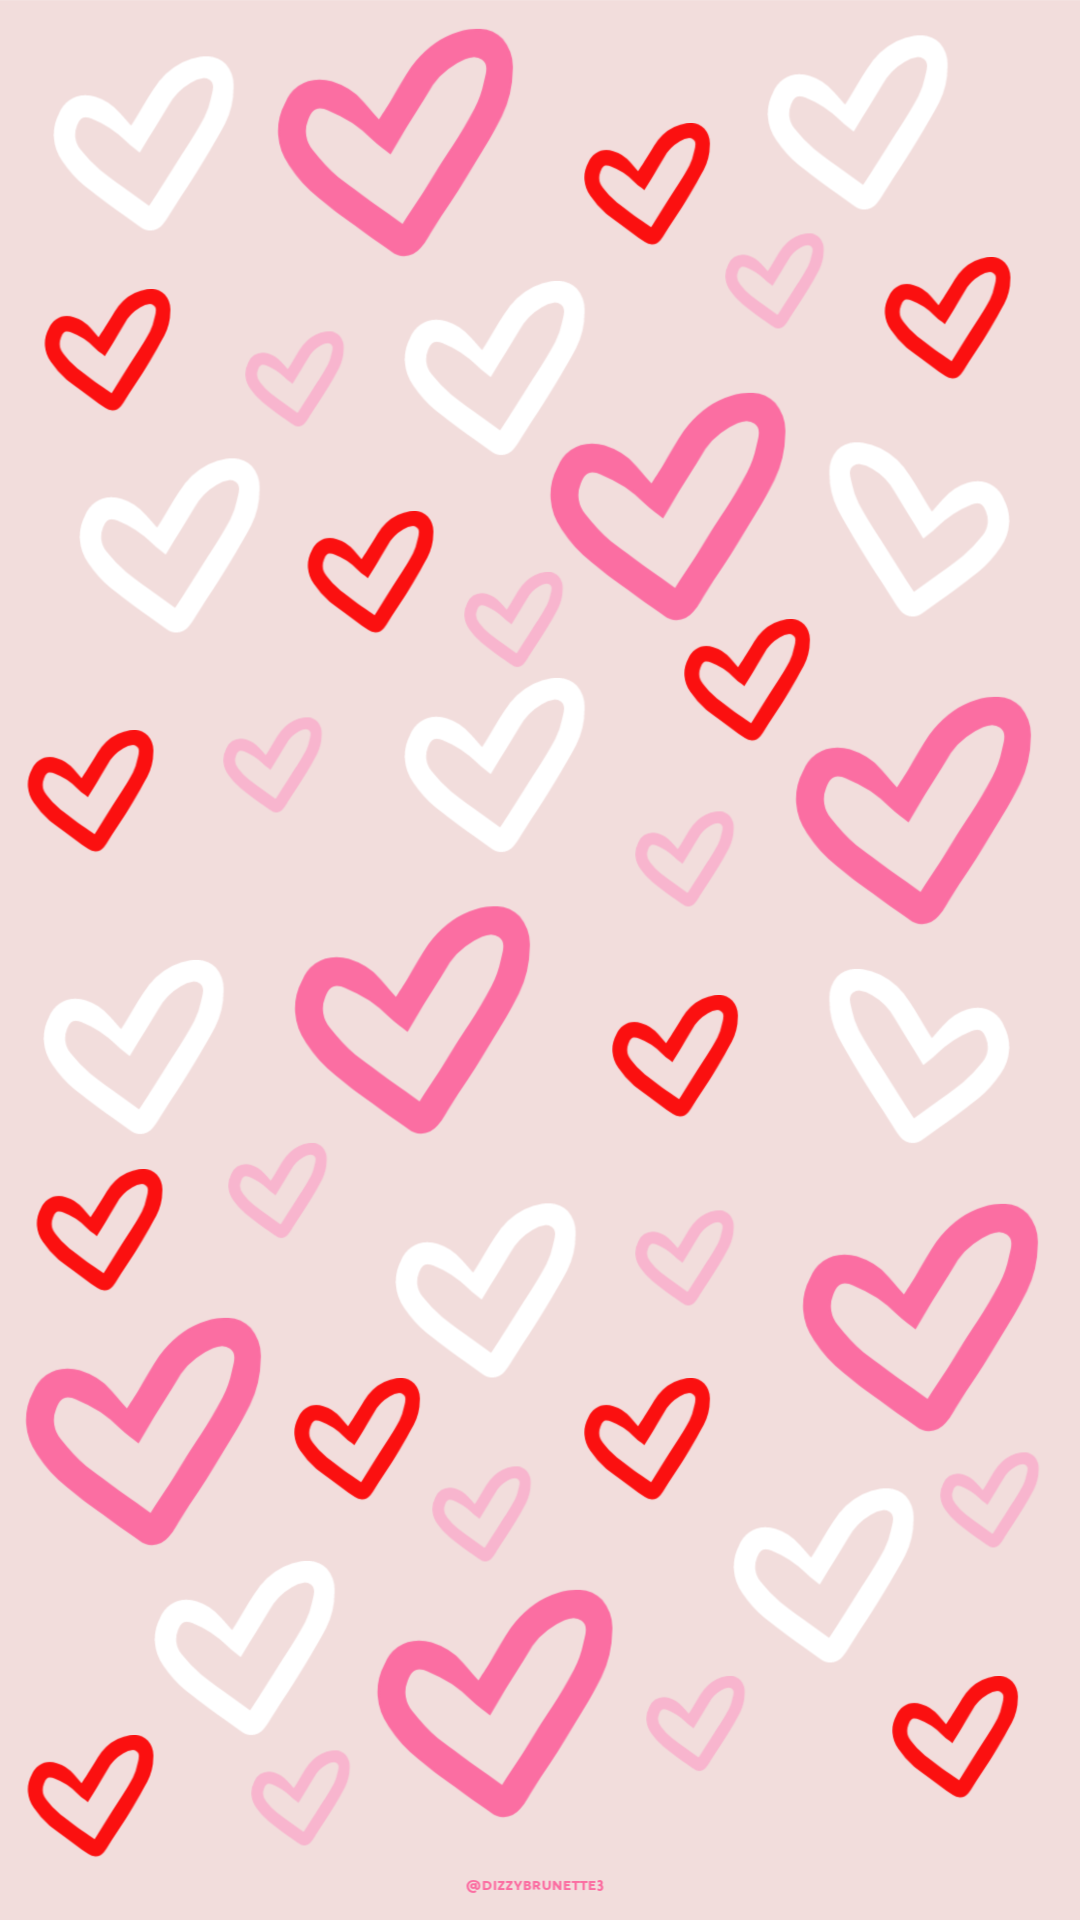 Free Phone Wallpapers - February Edition - Corrie Bromfield